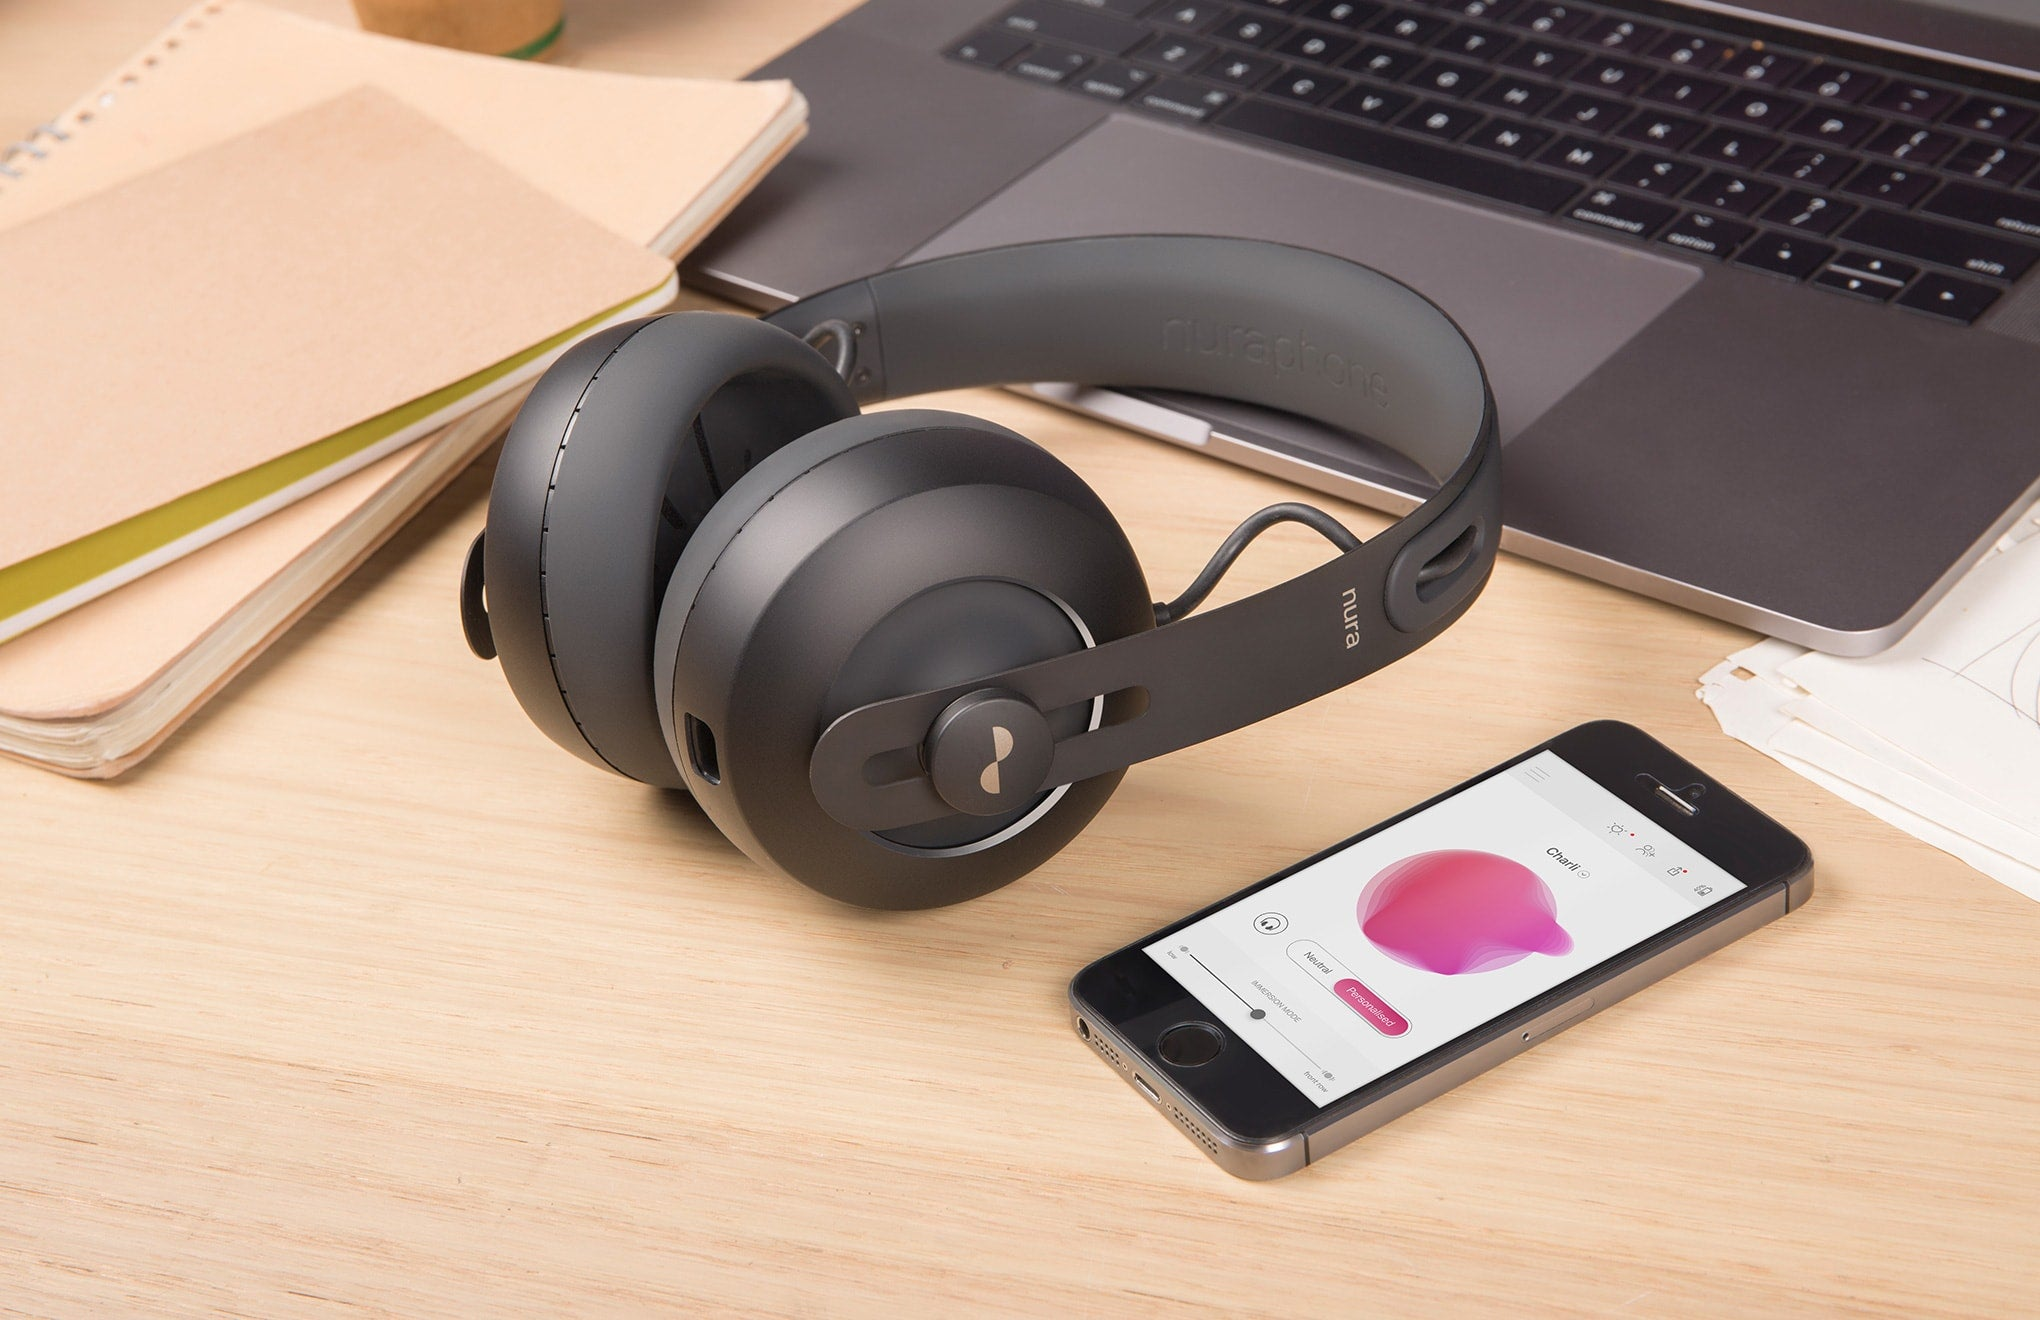 Nuraphone - Casque audio qui s'adapte à votre audition.